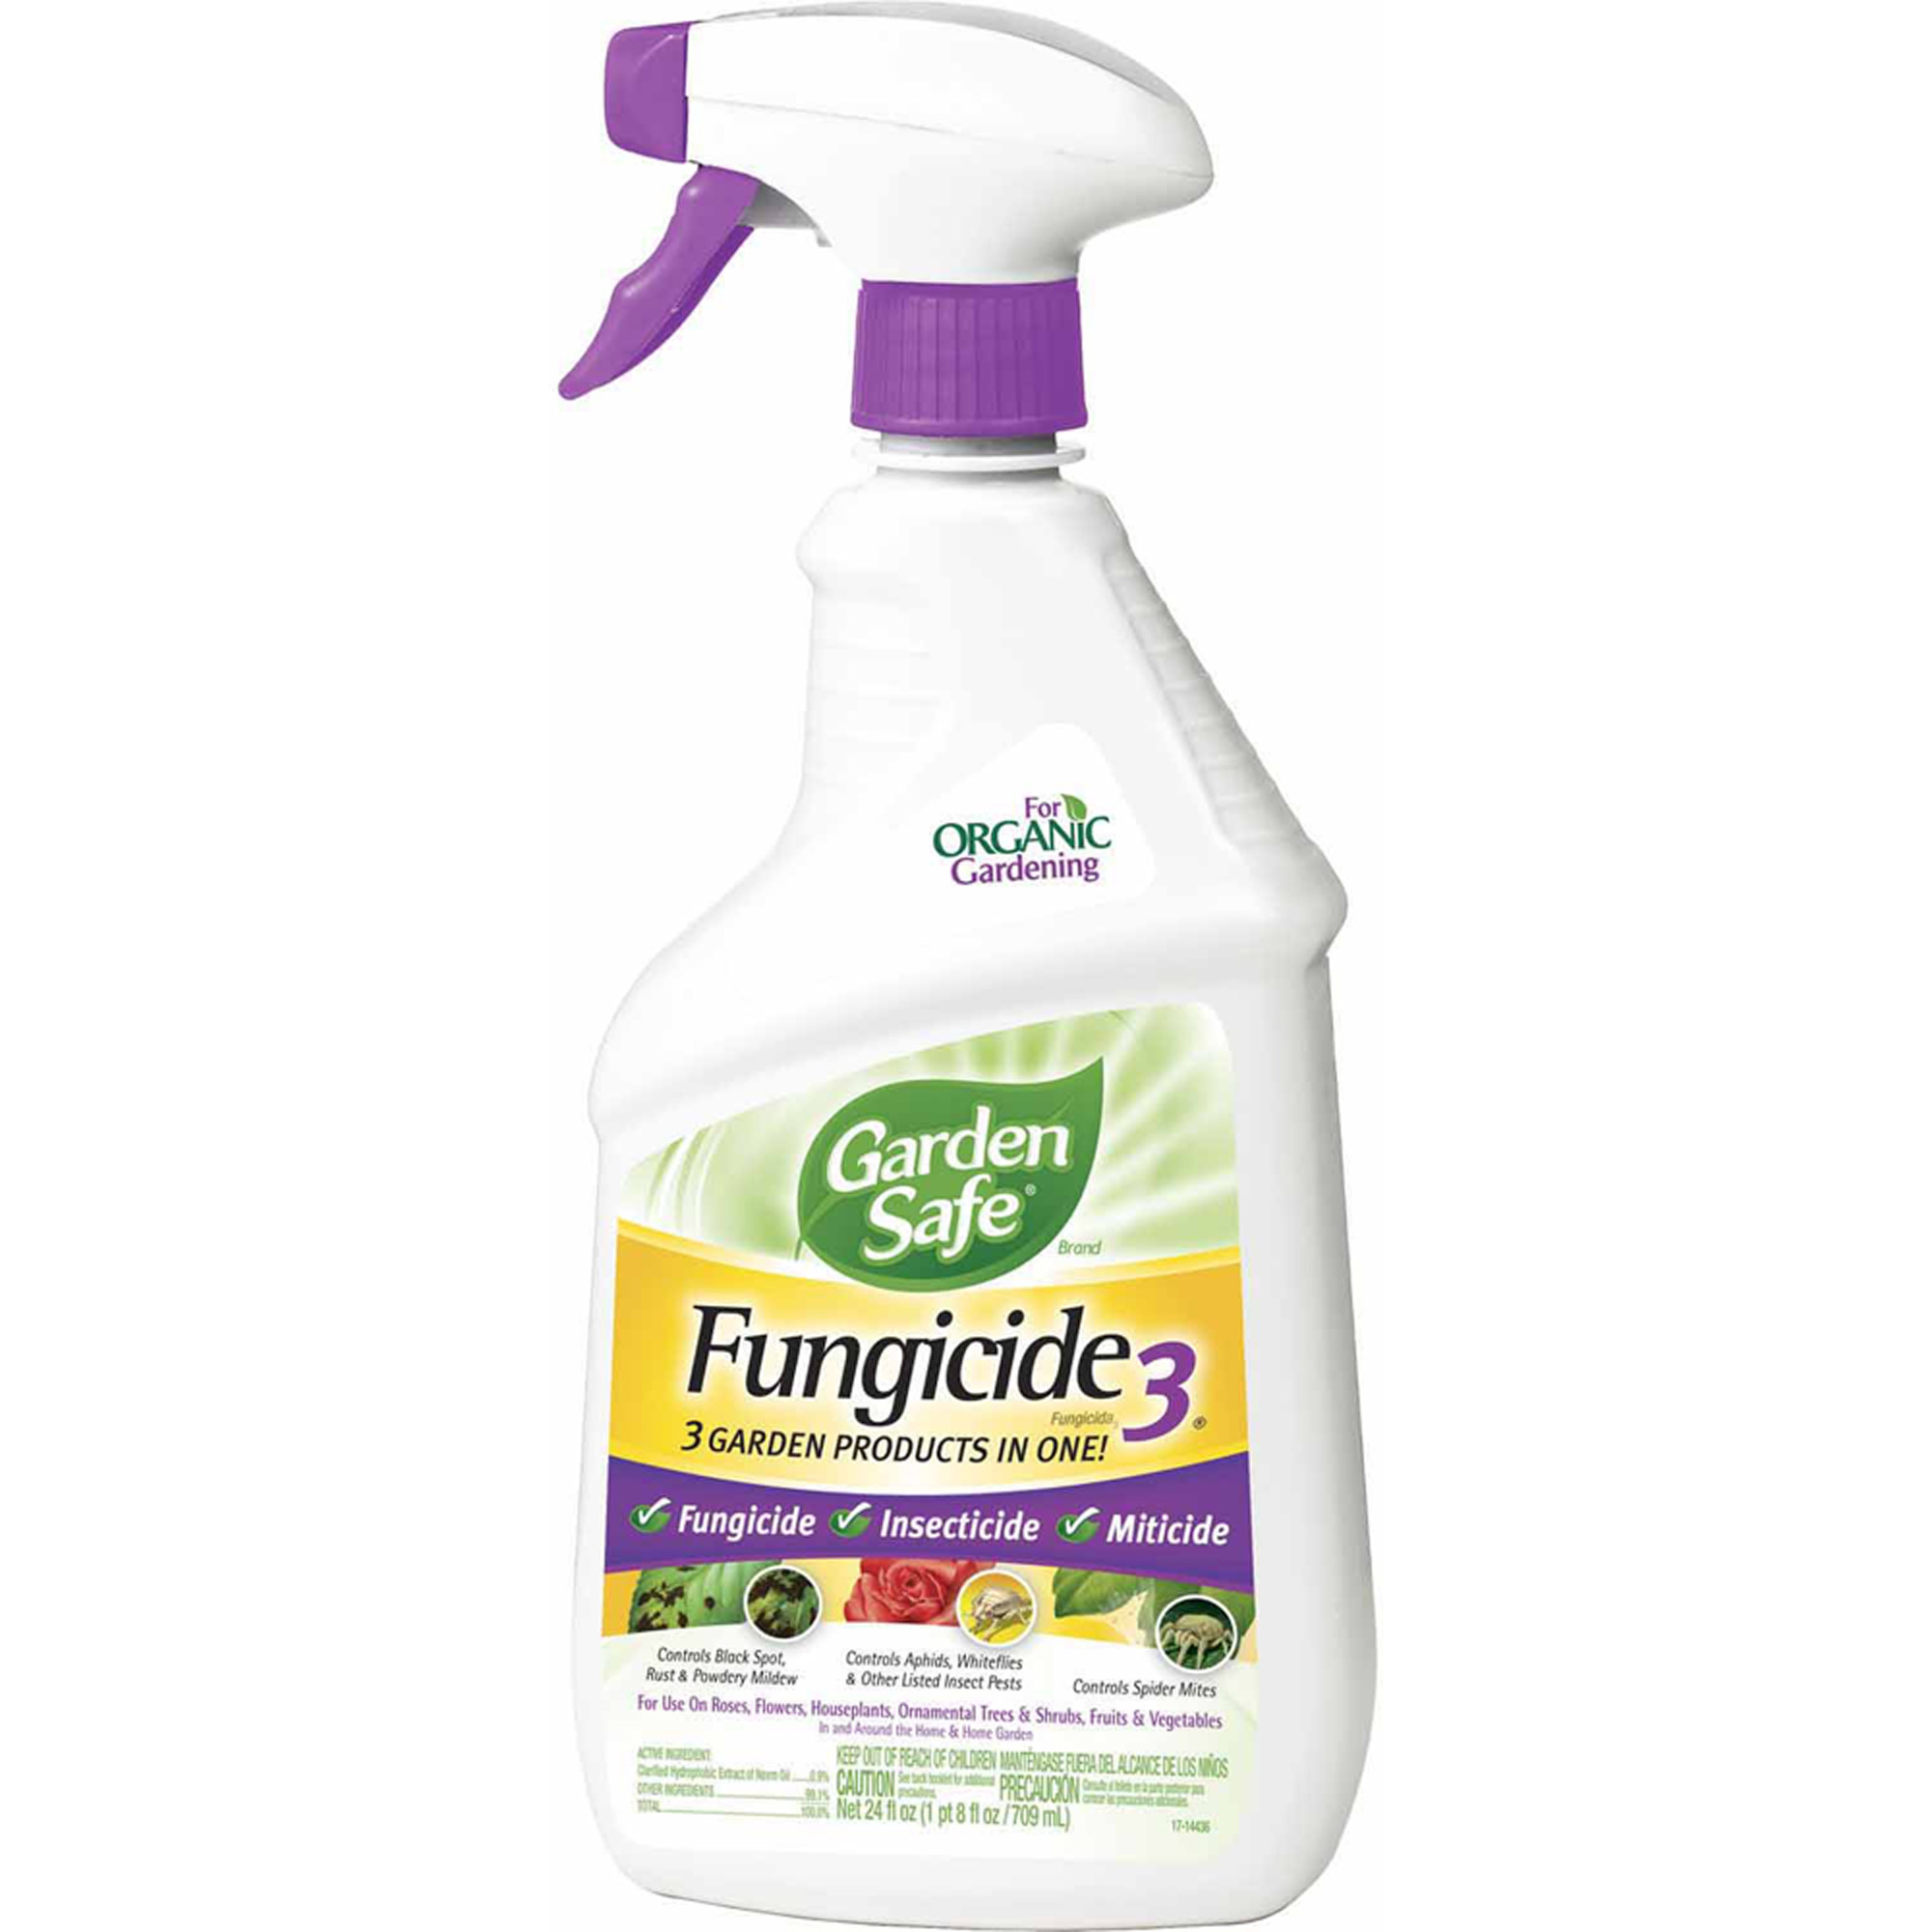 Garden Safe Brand Fungicide 3 Ready-to-Use, 24 oz